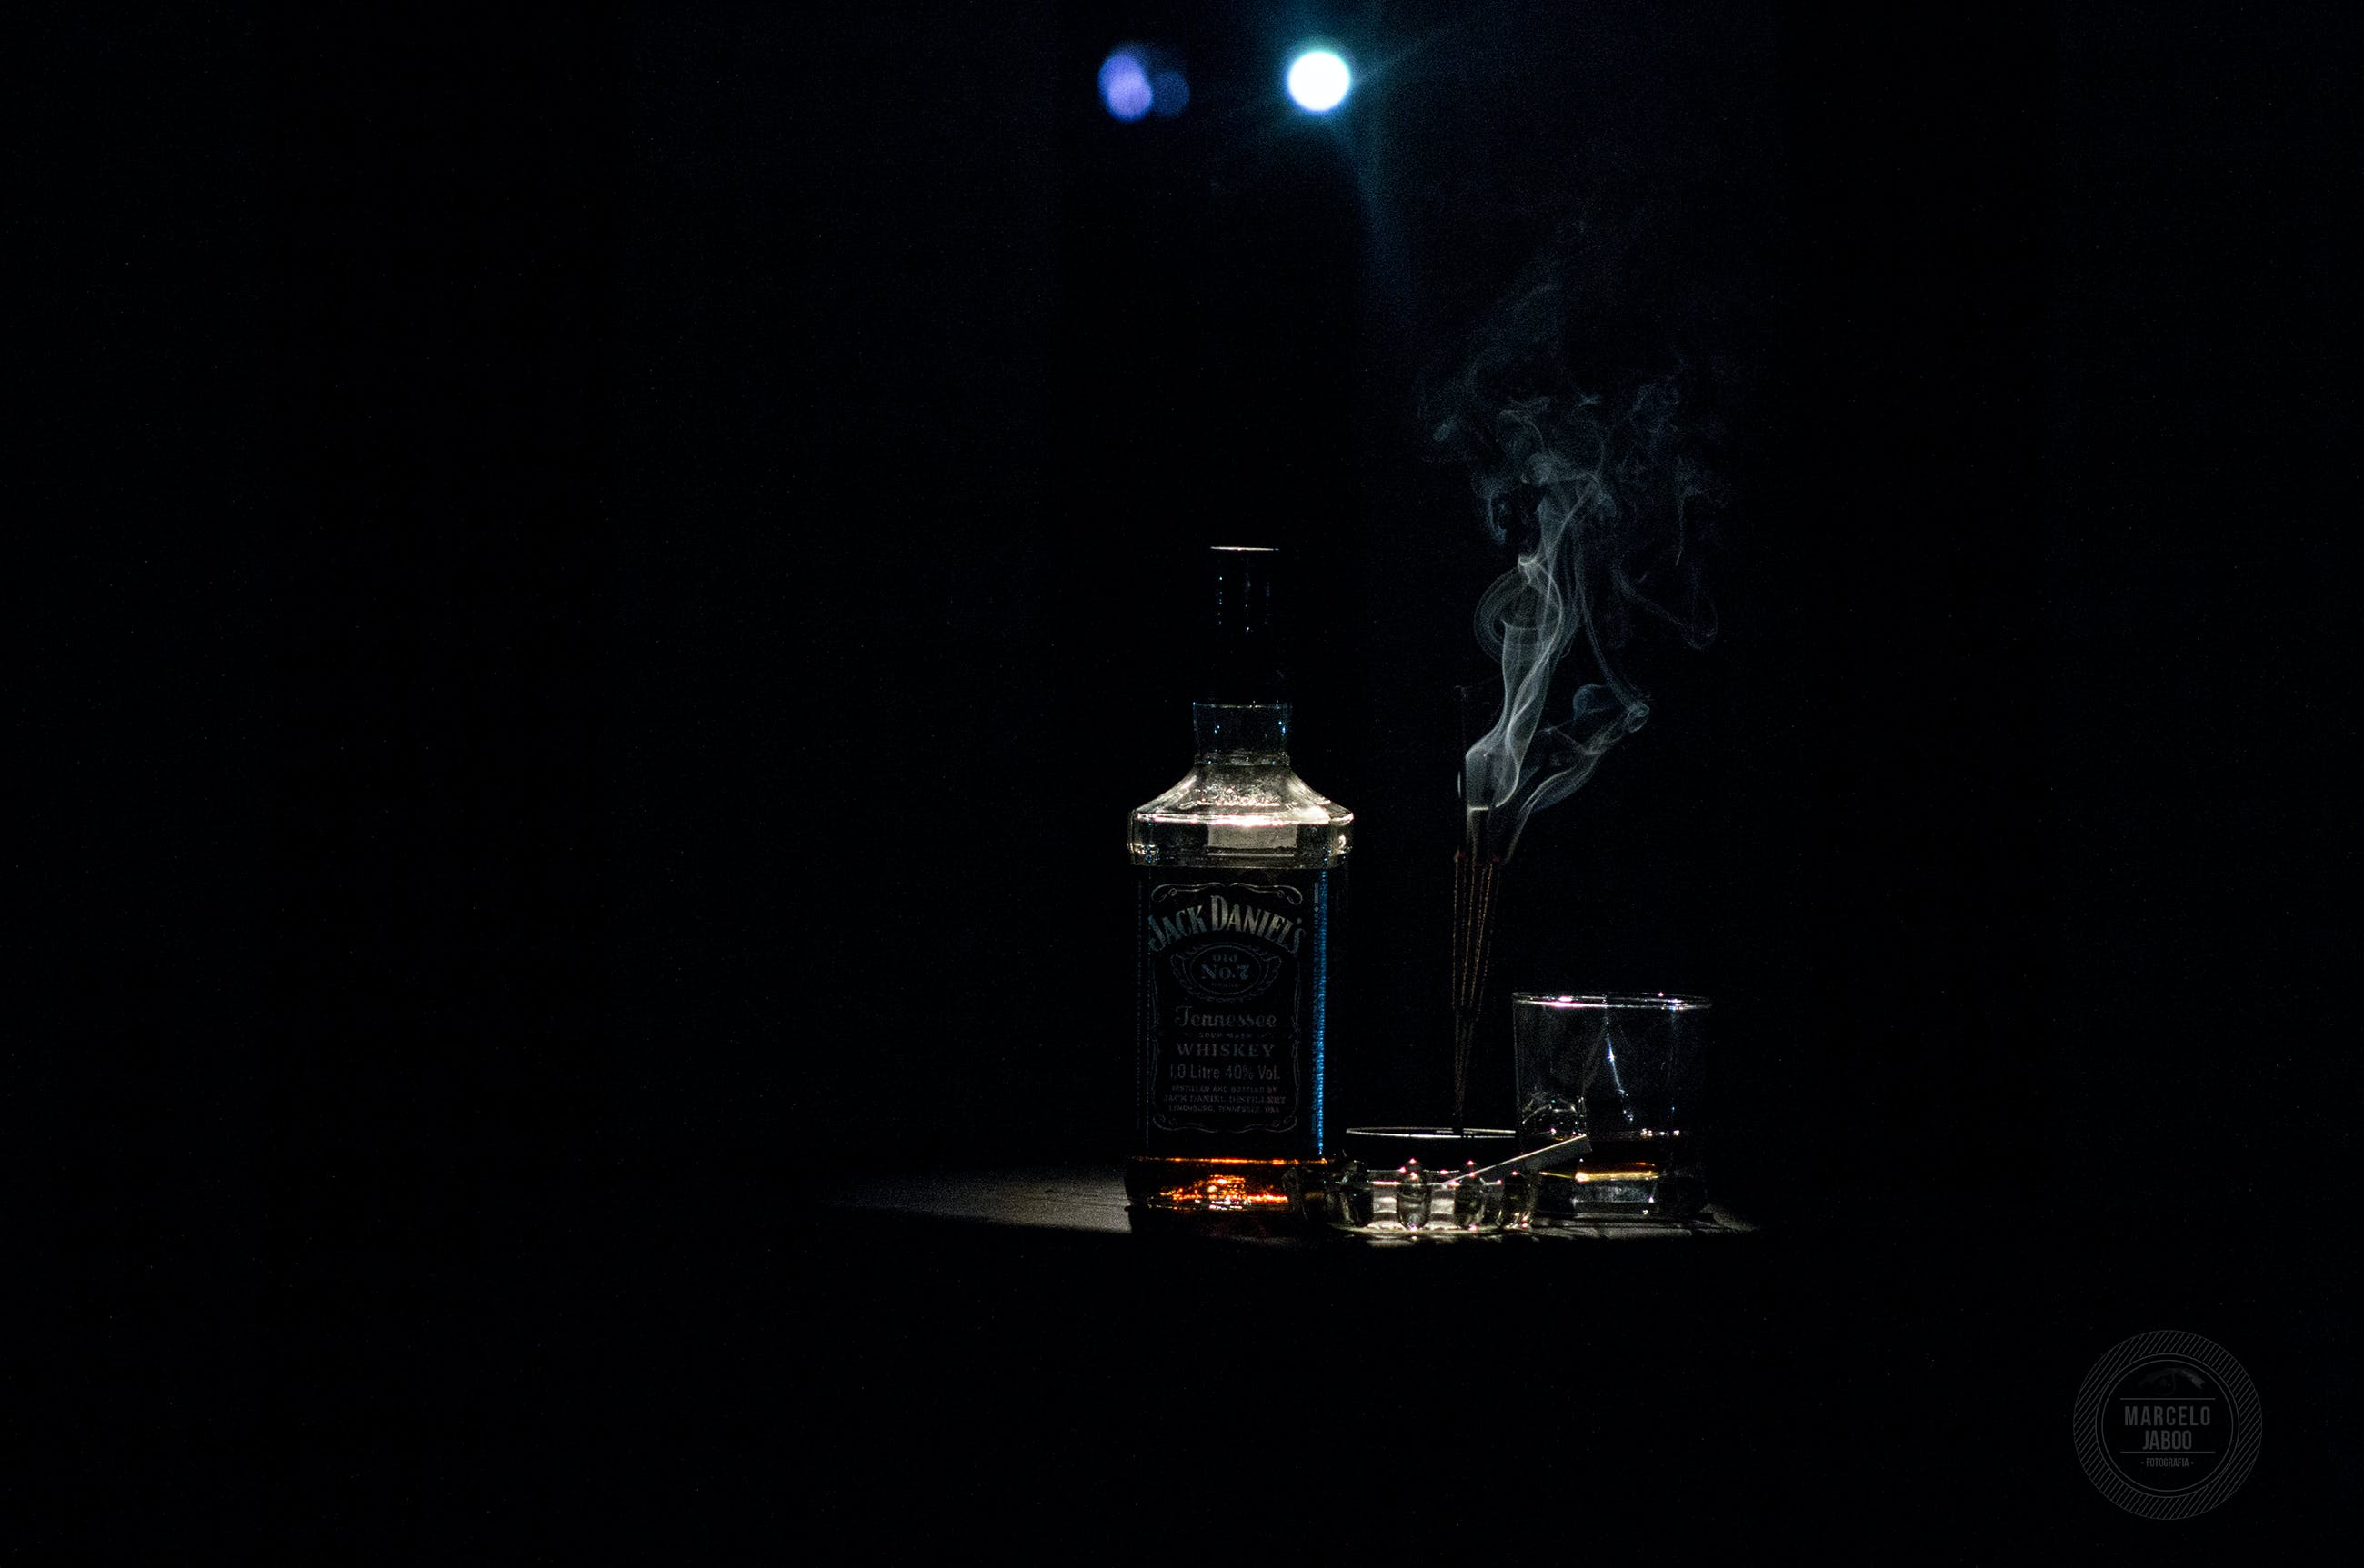 Closeup Photo of Liquor Bottle Against Black Background